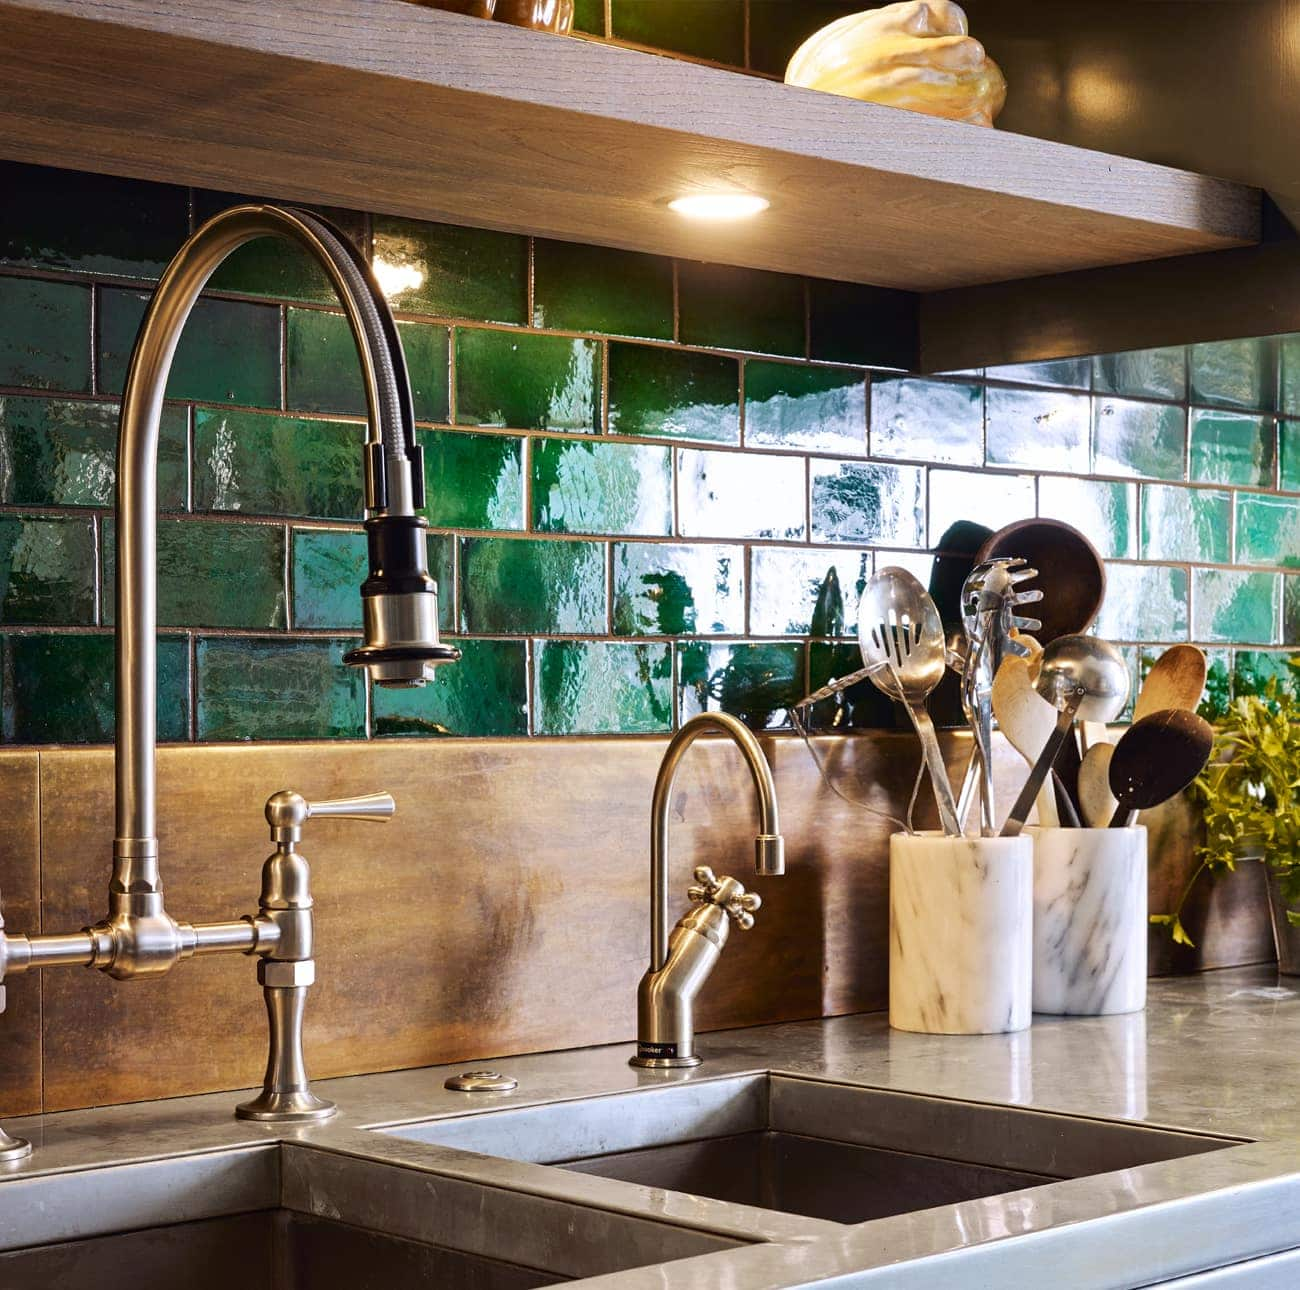 Industrial taps with green wall tiles and wooden splashback